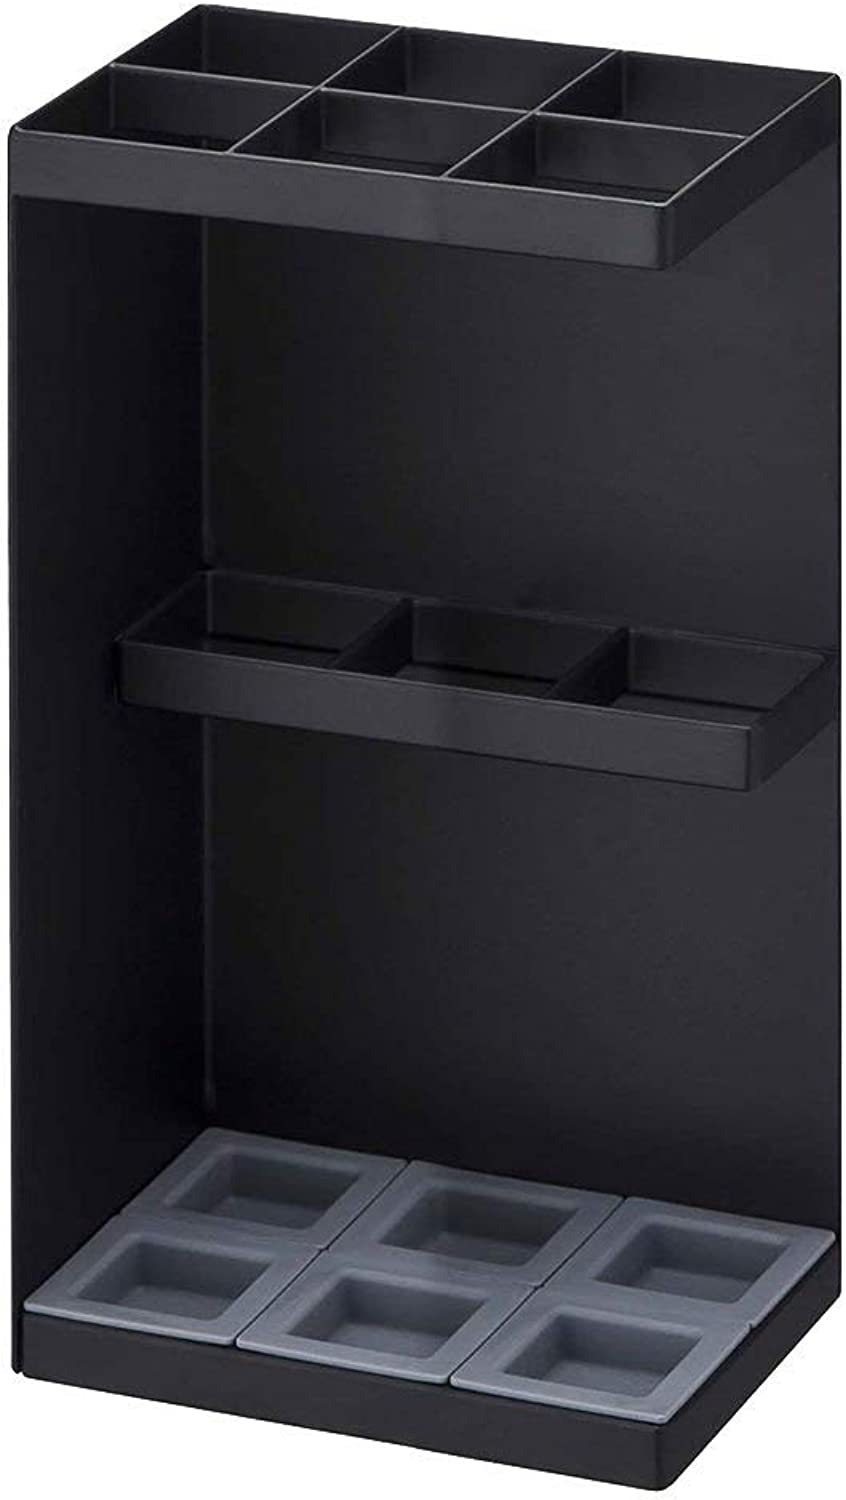 Umbrella Stand Umbrella Rack Household Floor-Standing Umbrella Bucket Corner Storage Umbrella Shelf Hotel Lobby Umbrella Rack (color   Black)